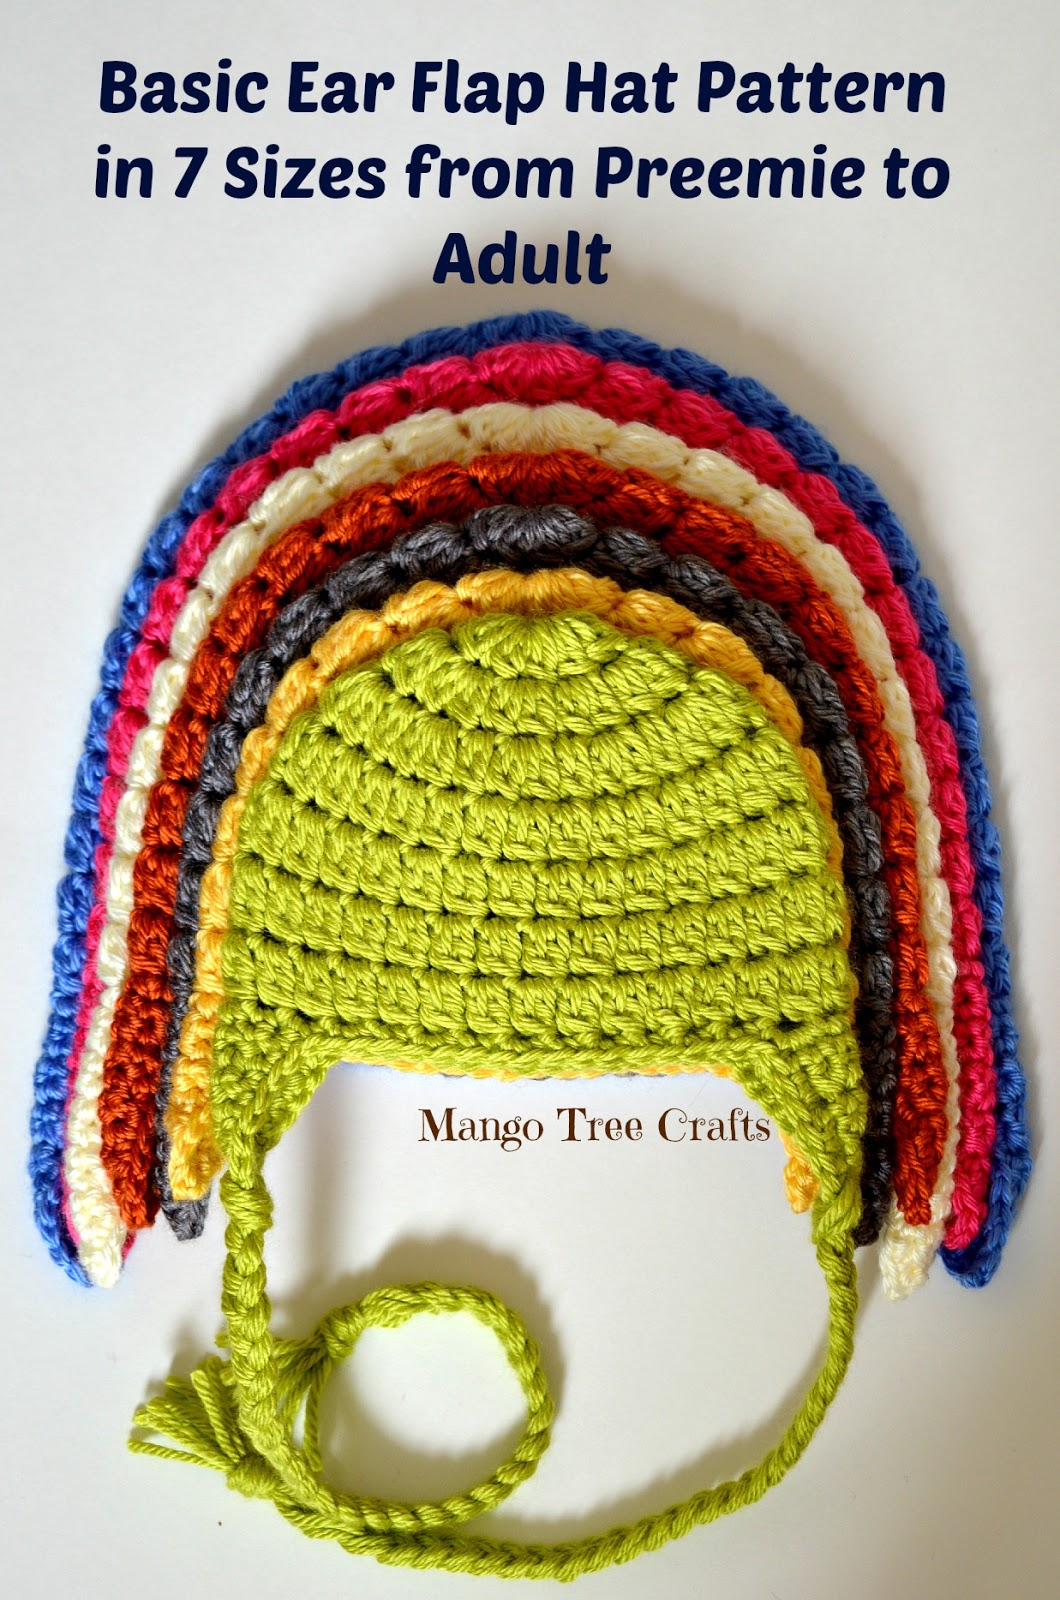 Mango Tree Crafts: Basic Crochet Ear Flap Hat Pattern in 7 ...